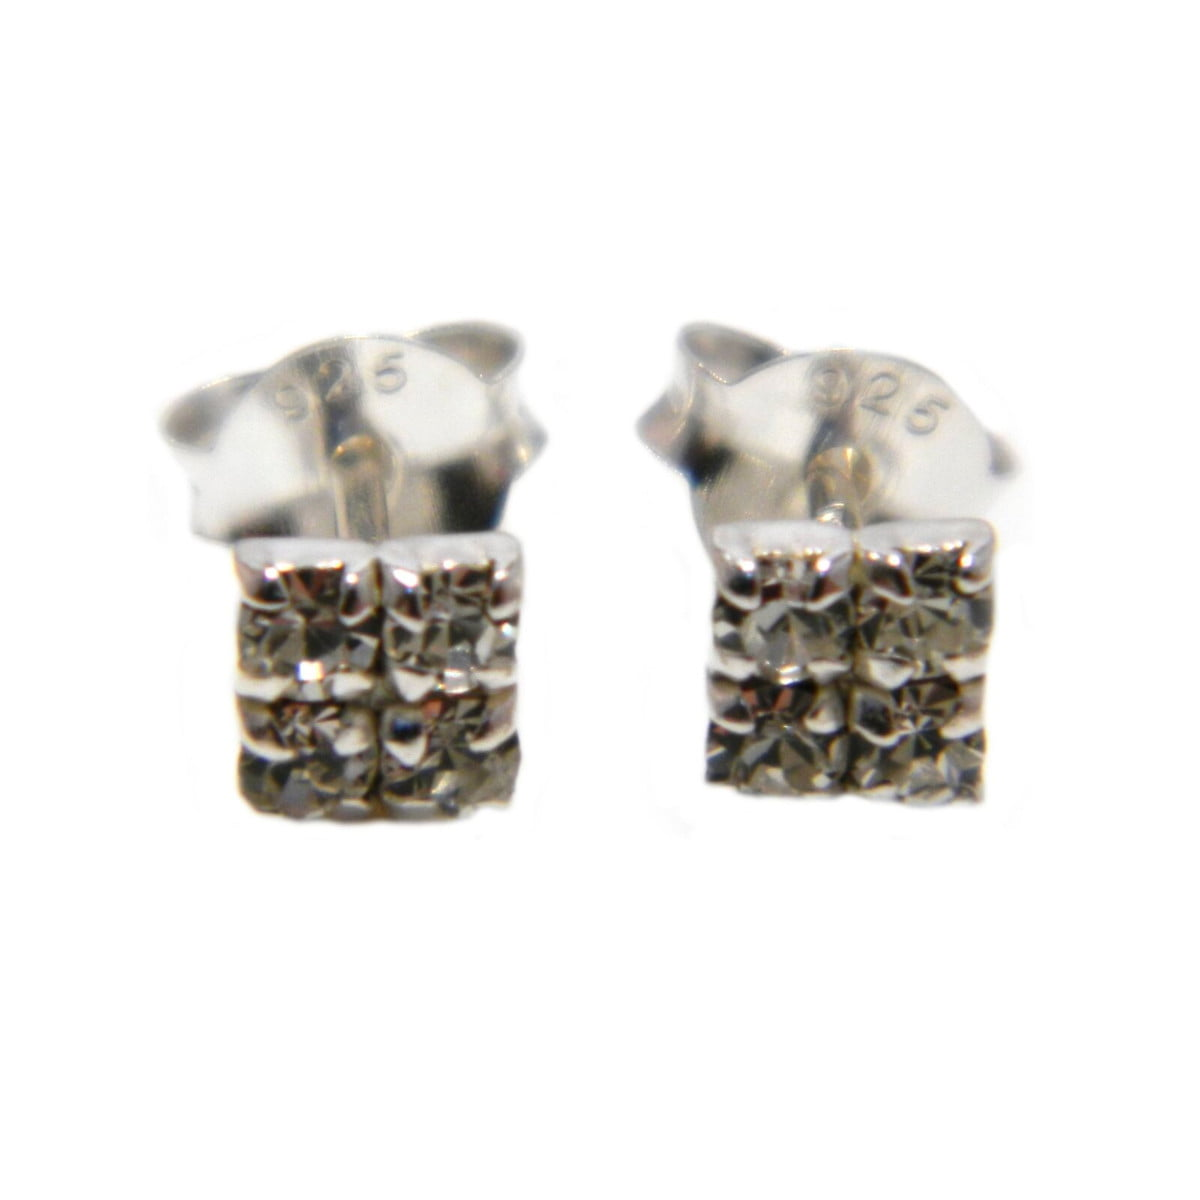 4 mm clear coloured crystal square stud earrings in sterling silver